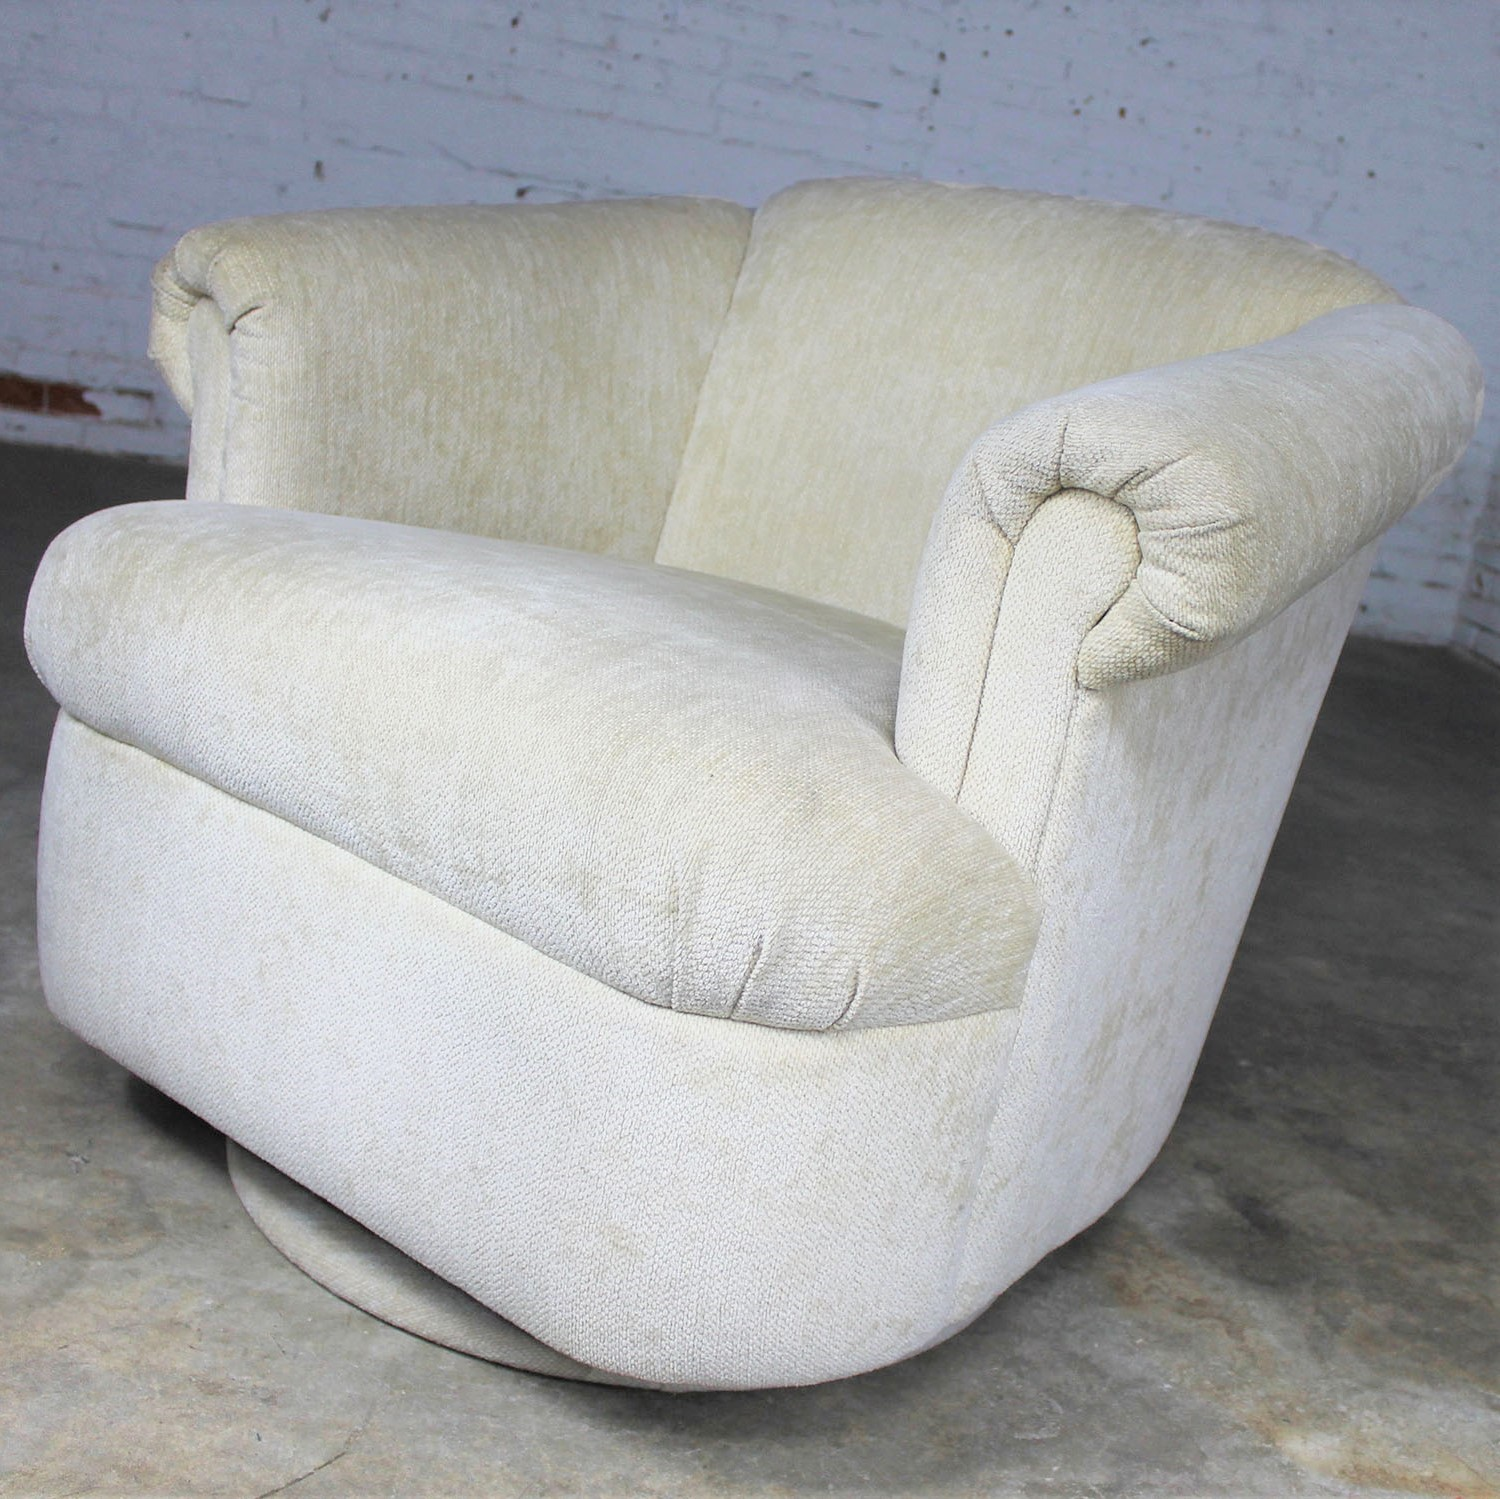 Incredible Barrel Shaped Off White Vintage Swivel Club Chair With Squirreltailoven Fun Painted Chair Ideas Images Squirreltailovenorg